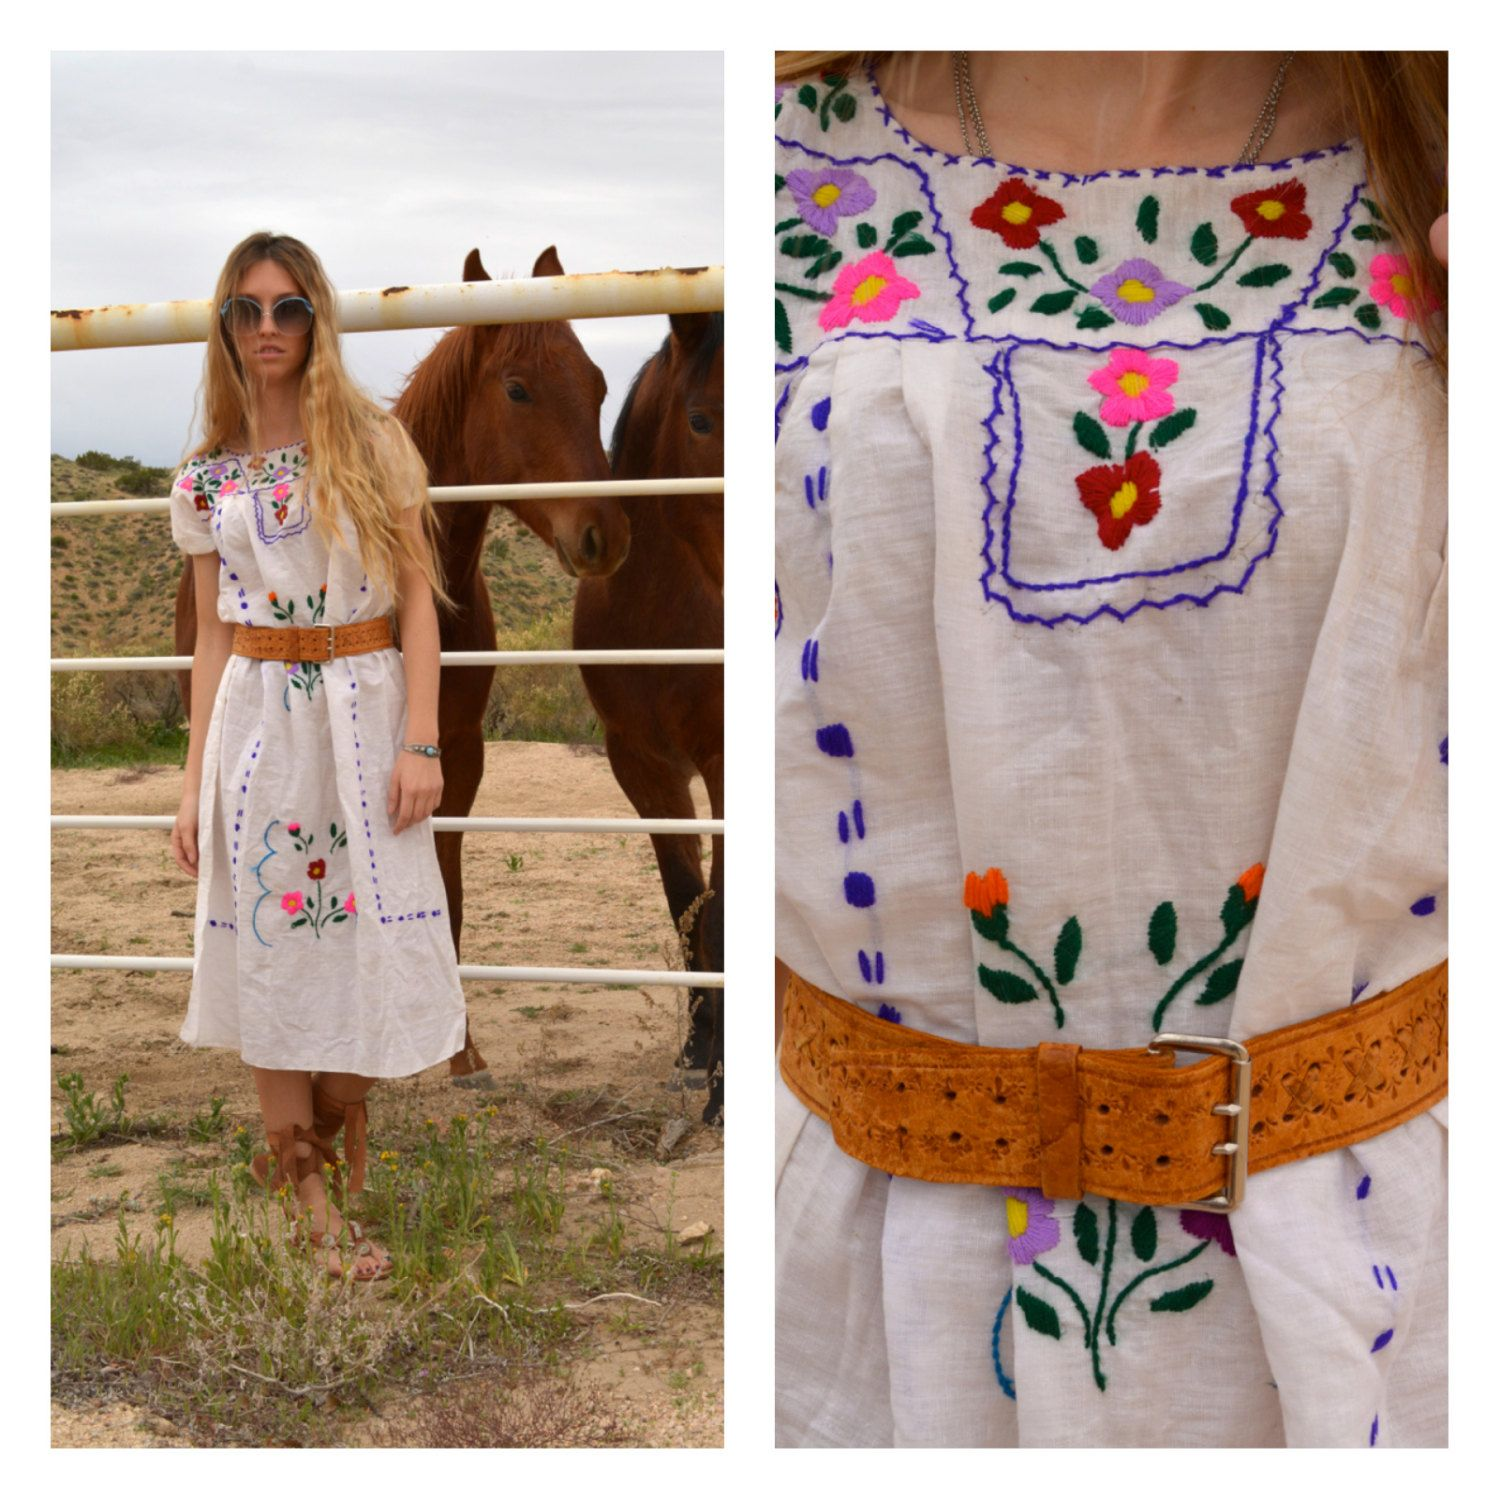 Hippie Masa Dress Embroidered Maxi Ethnic Embroidery Mexican Bright Colorful White Cotton Mexico Festival Coachella Summer Cotton Hand S by newagegypsy on Etsy